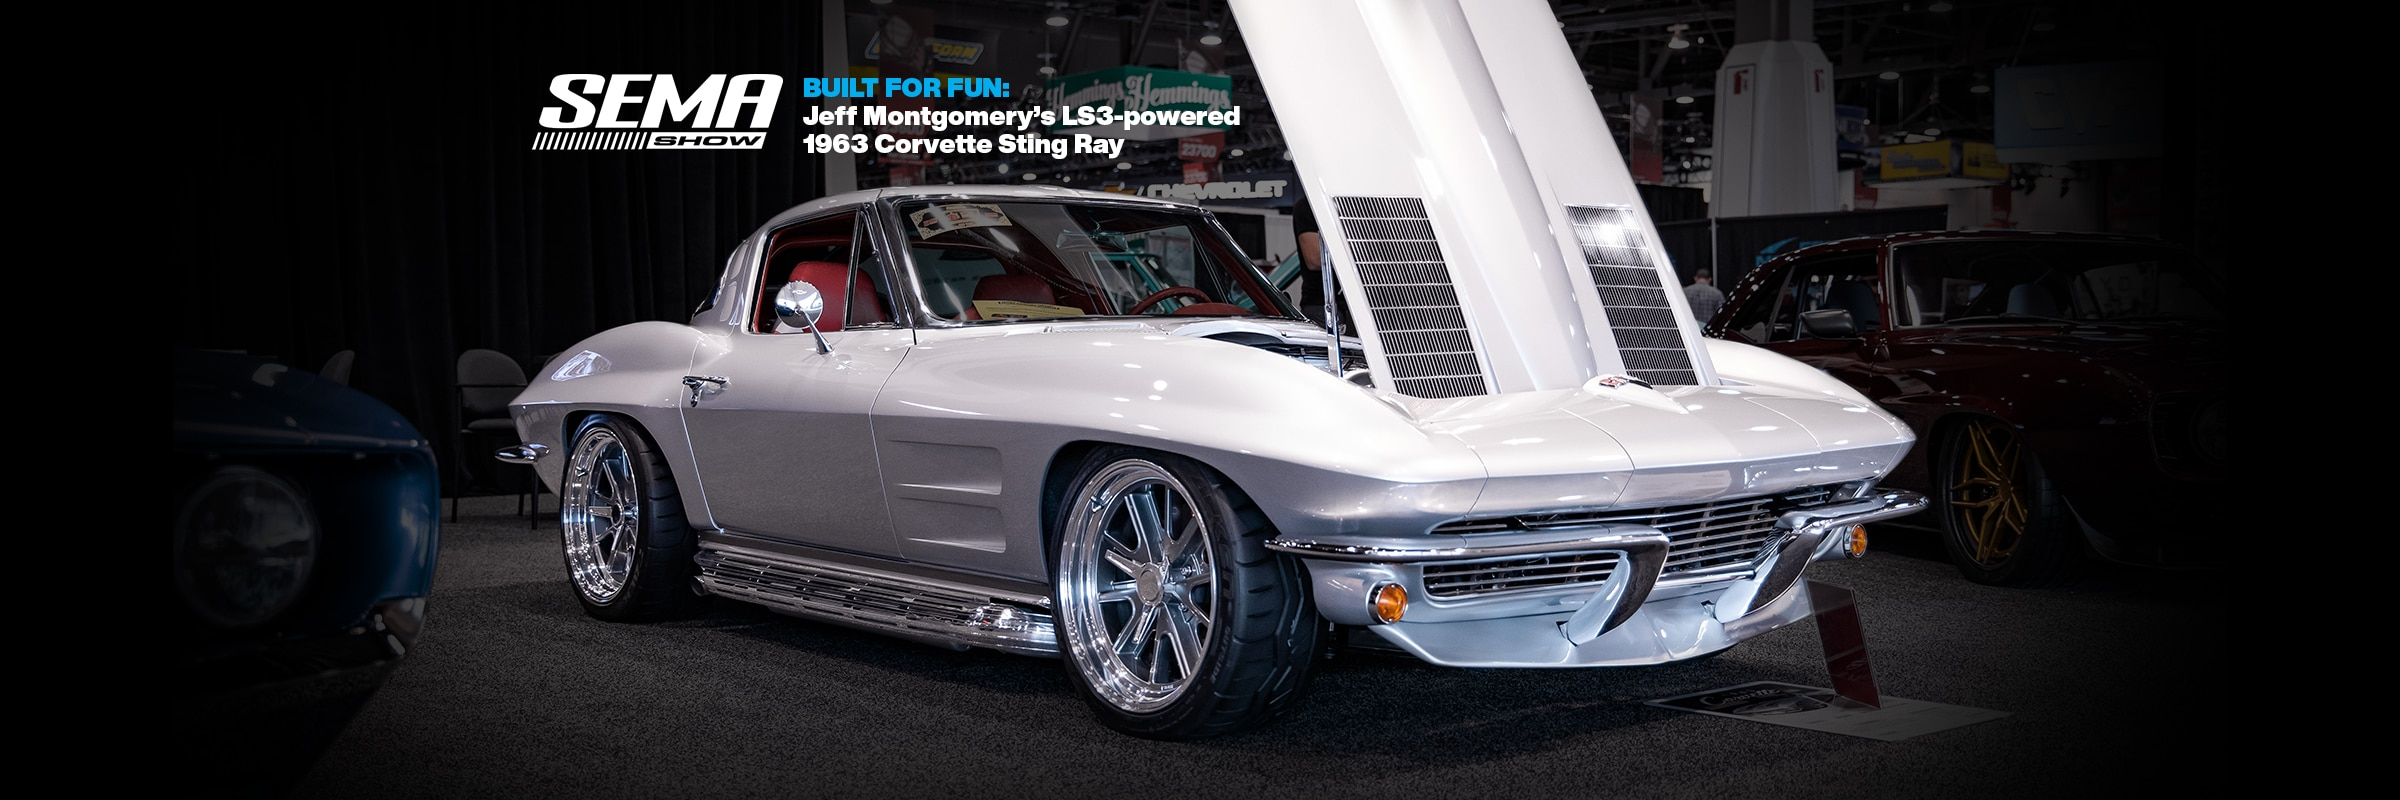 Parts, Events, Chevrolet Performance, Chevy, Chevrolet, Engines, Crate Engines, LS, LS Swap, LS3, Corvette, Corvette Sting Ray, 1963 Corvette Sting Ray, 1963 Corvette, SEMA, SEMA, SEMA Show, Chevy SEMA